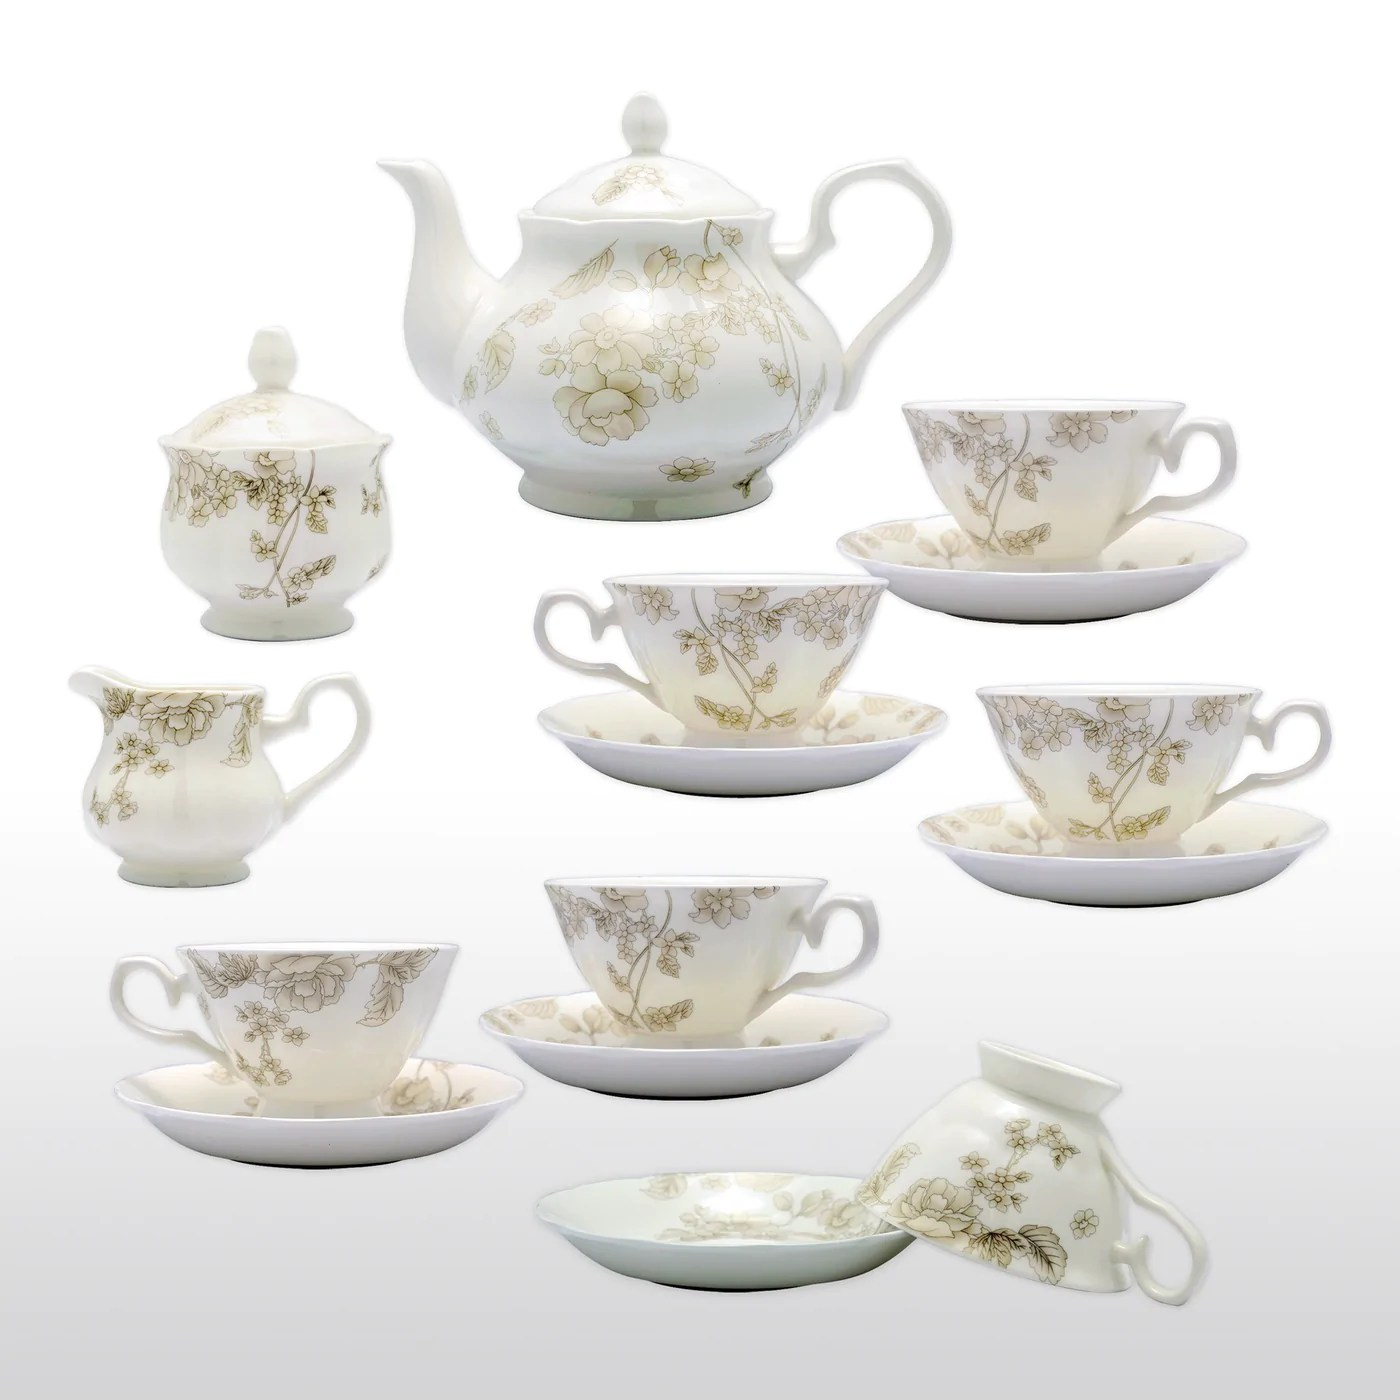 Teapot With Cup Fine Bone China 15 Piece Coffee Tea Set Neutral Colors With Teapot Cups Saucers Sugar Bowl And Creamer